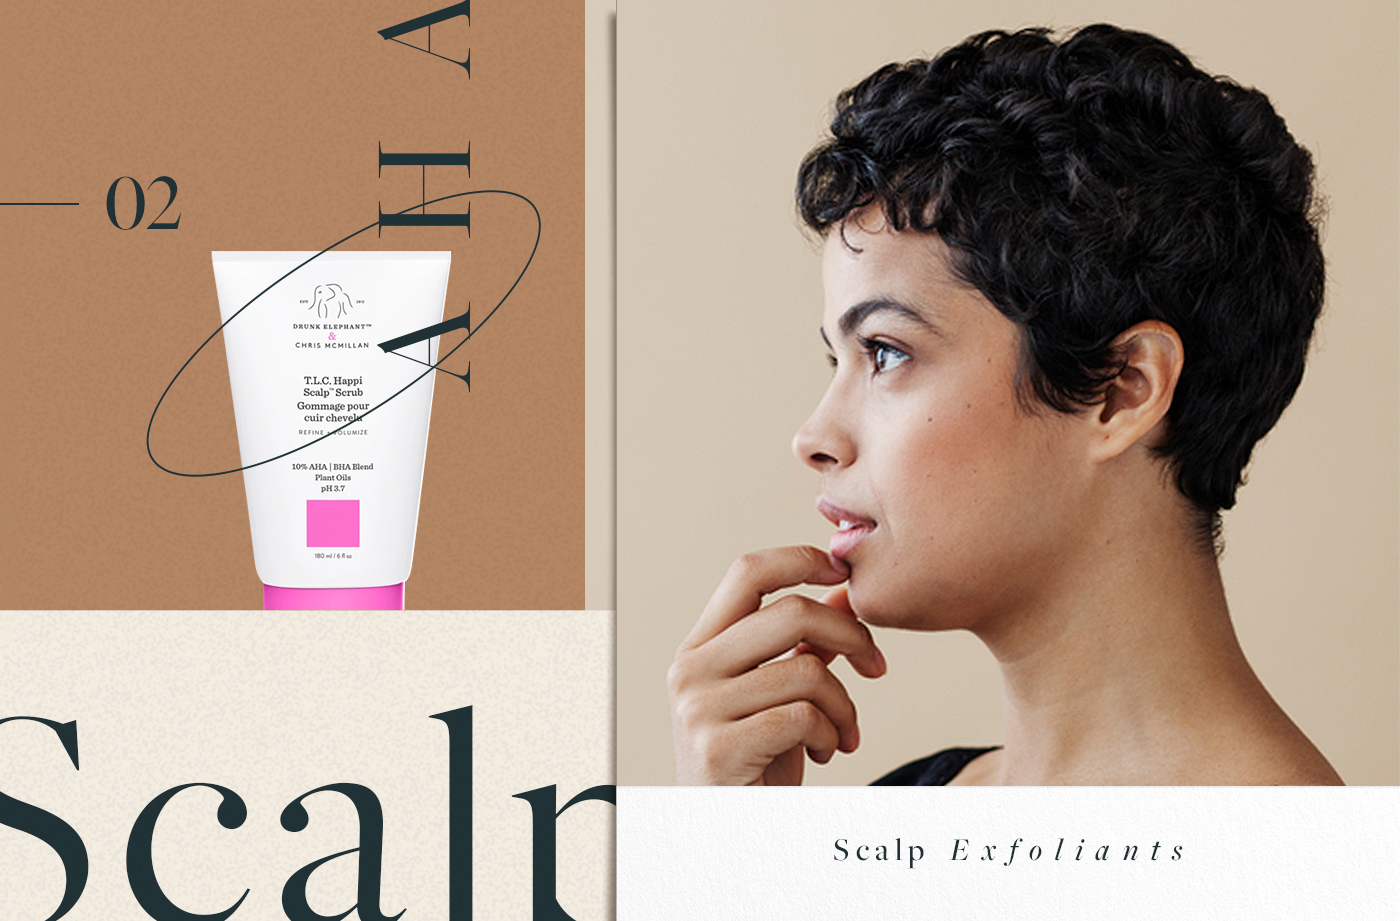 Thumbnail for 8 Scalp Exfoliants That Melt Away Build-Up and Dead Skin That Shampoo Misses